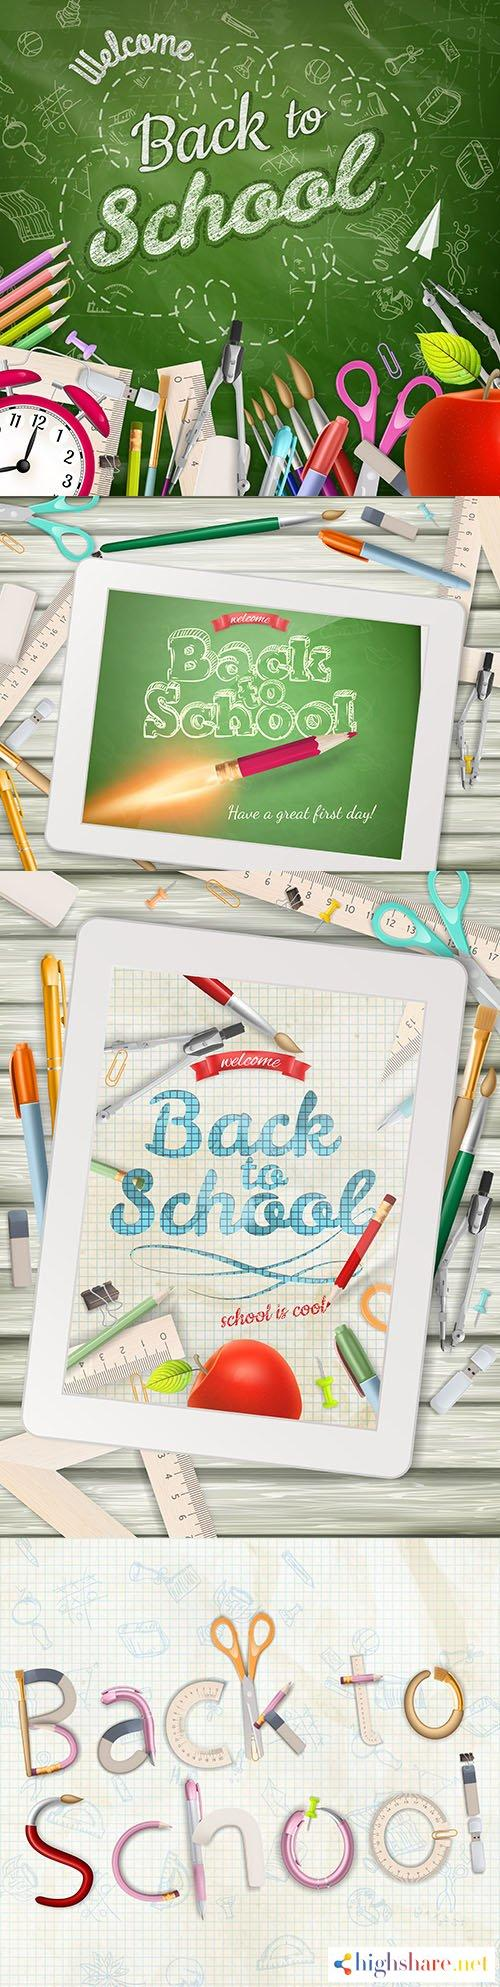 back to school and accessories collection illustration 42 5f4000a6e10a4 - Back to school and accessories collection illustration 42